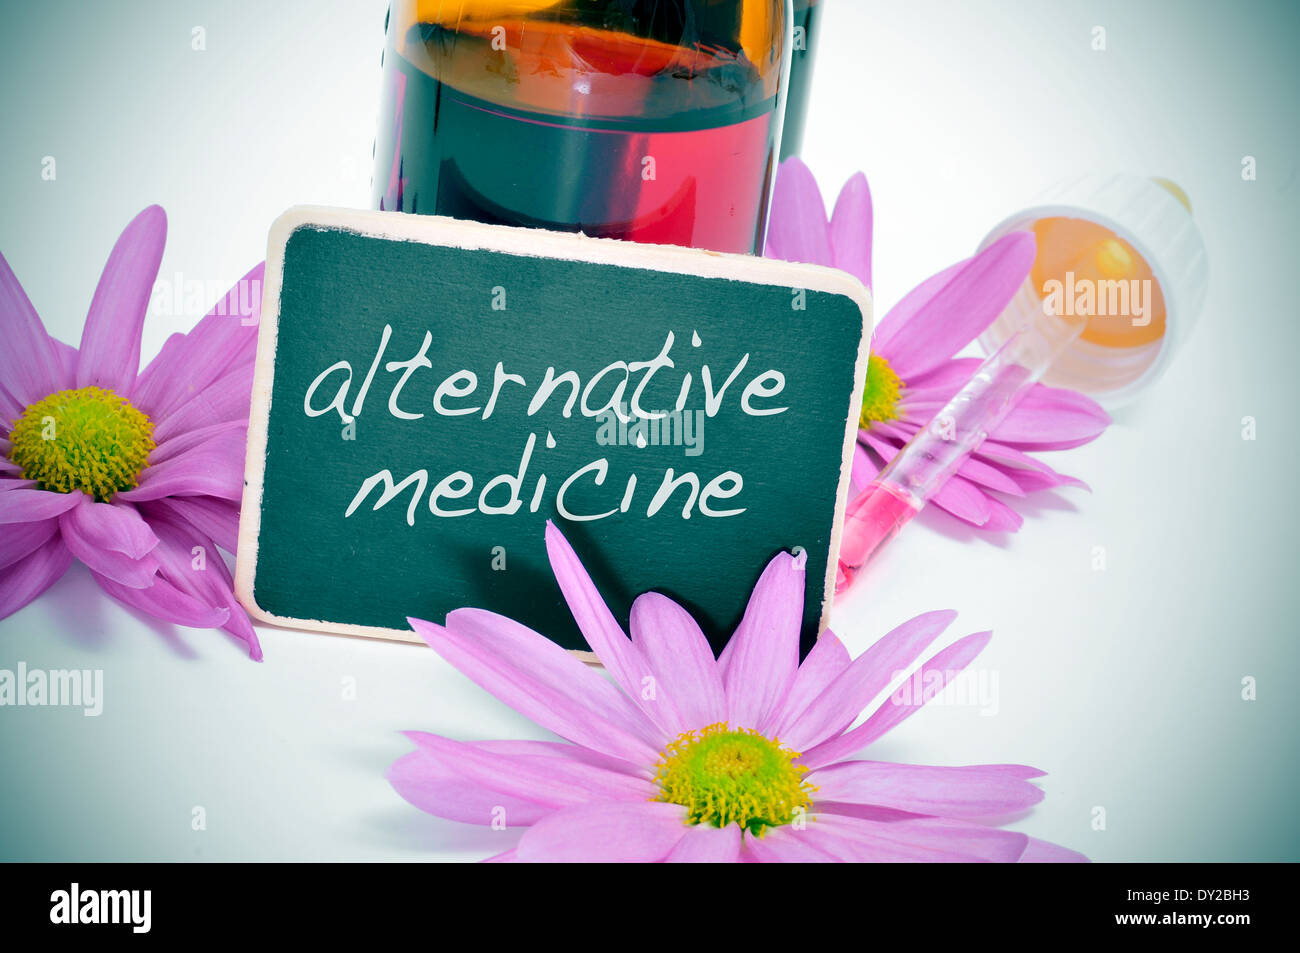 a dropper bottle and some flowers with a blackboard label with the text alternative medicine written on it - Stock Image